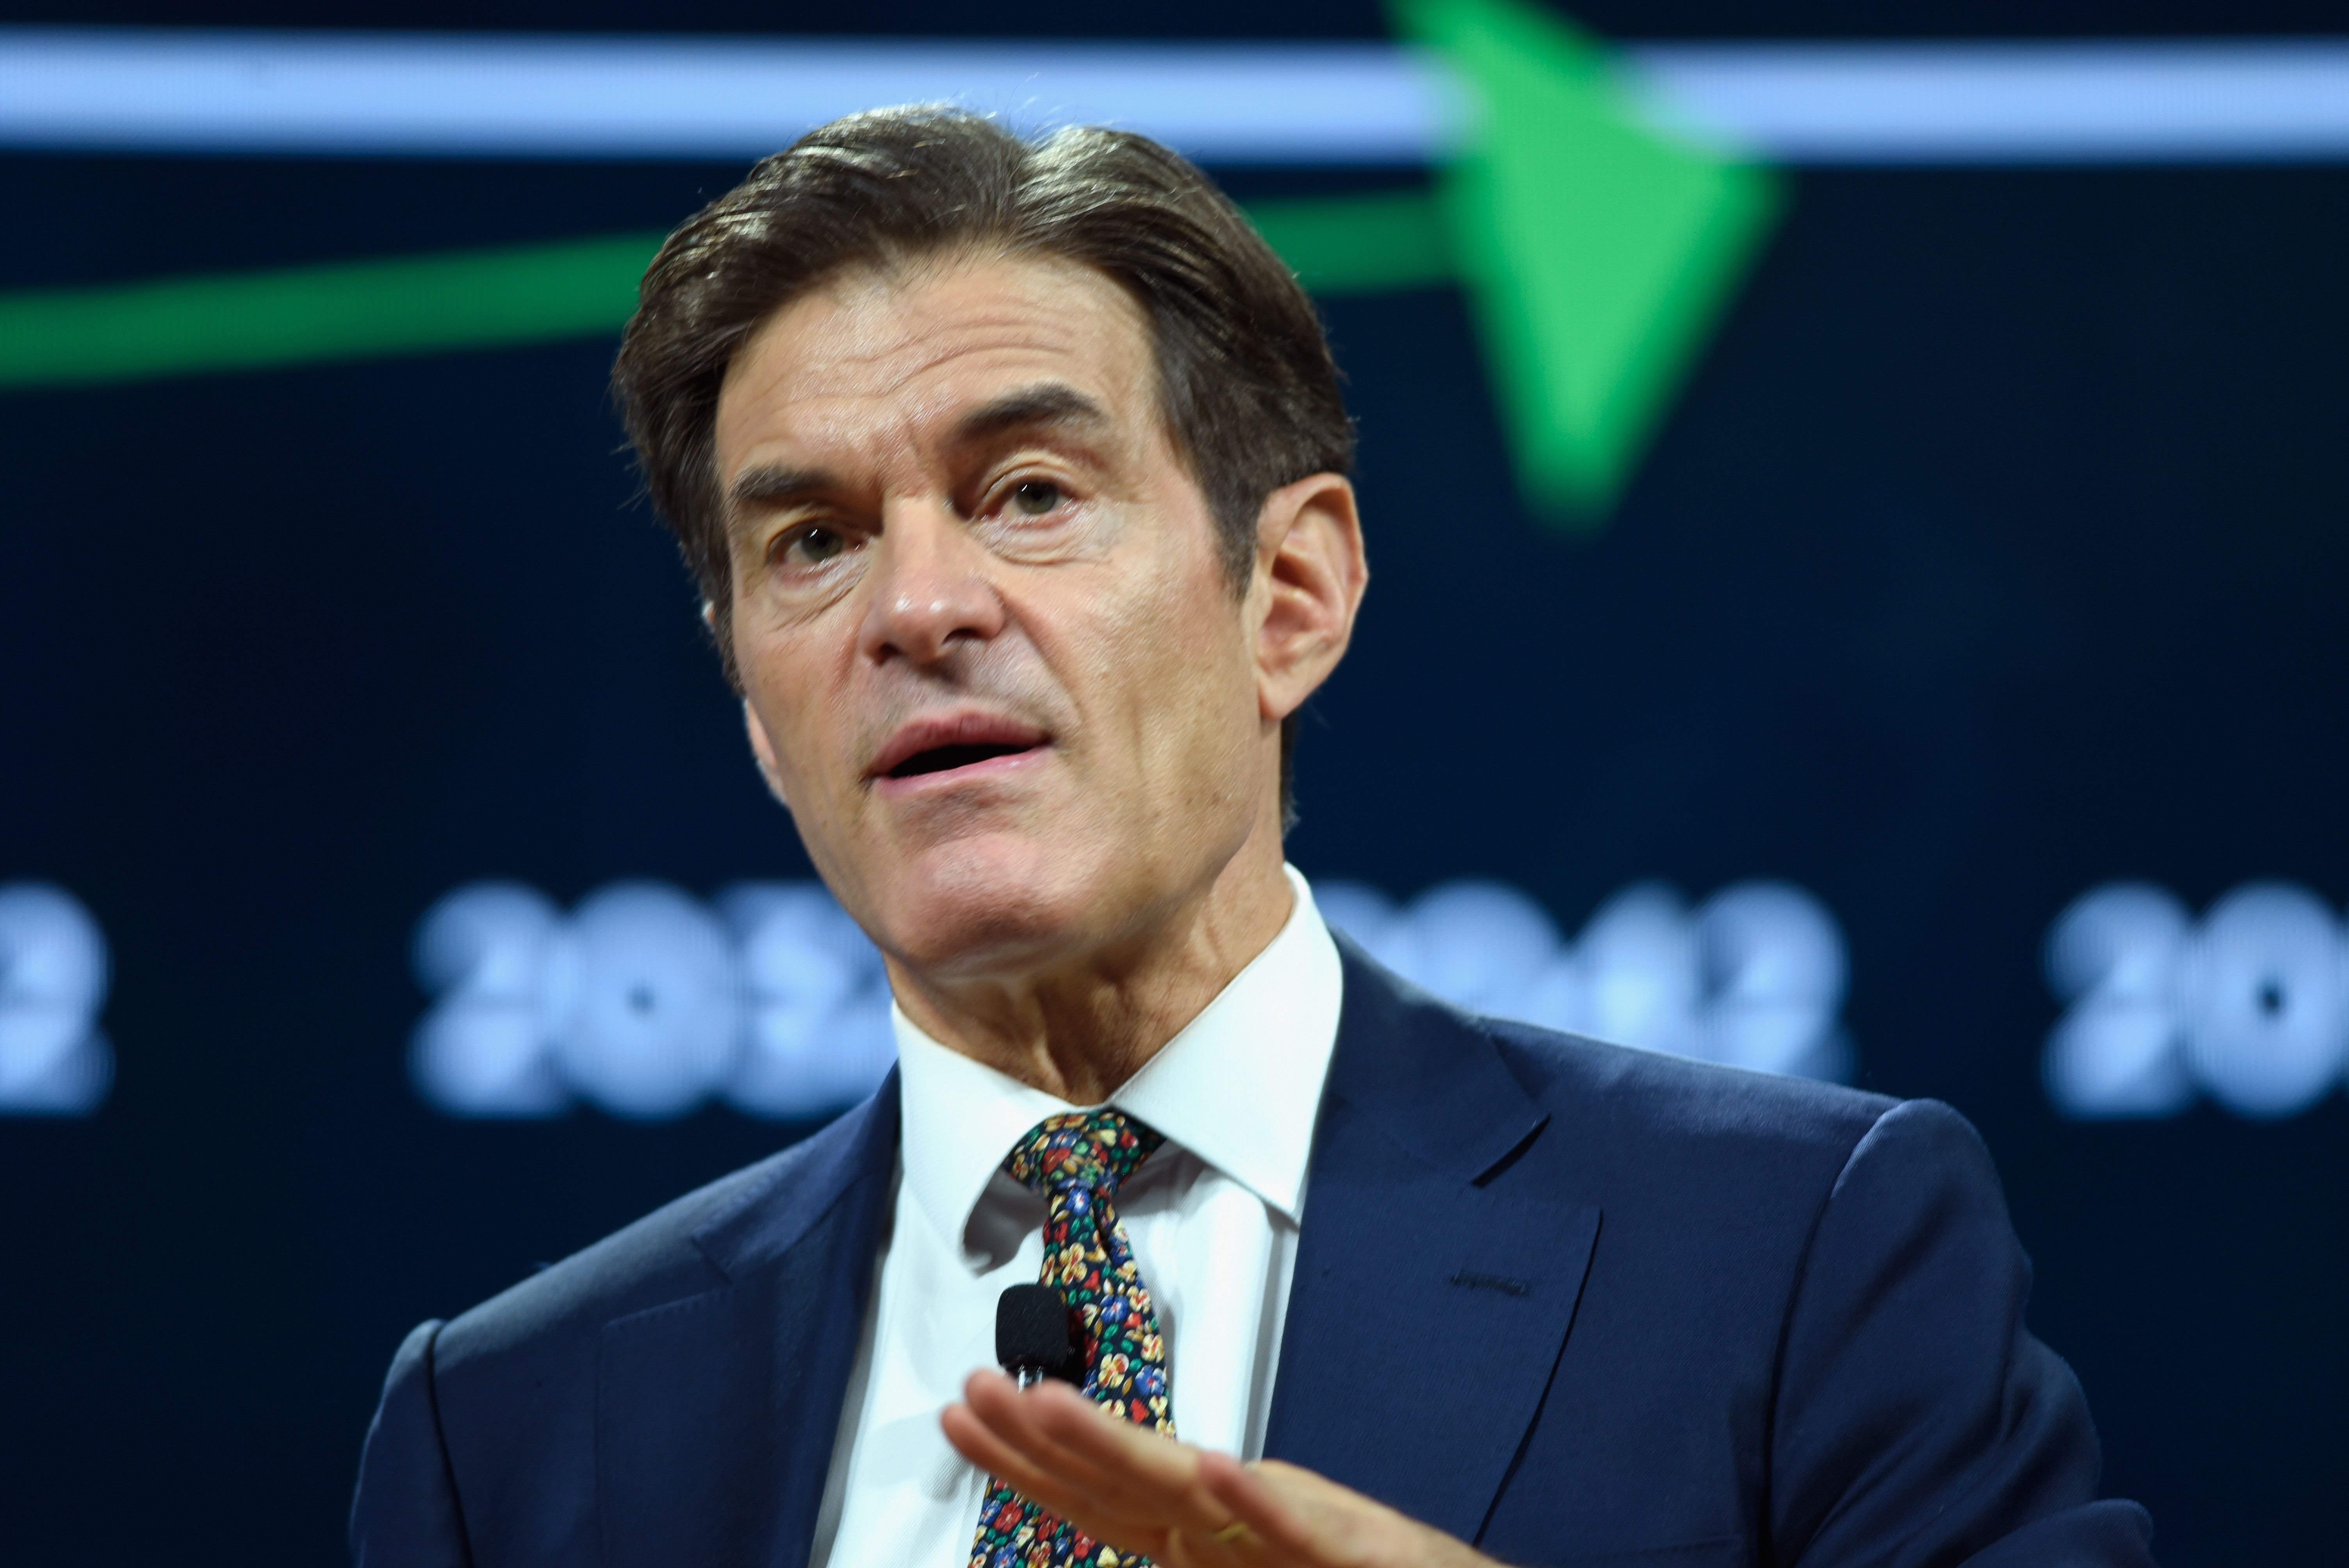 Dr. Mehmet Oz, spoke at The 2017 Concordia Annual Summit at Grand Hyatt New York on September 19, 2017 | Photo: Getty Images